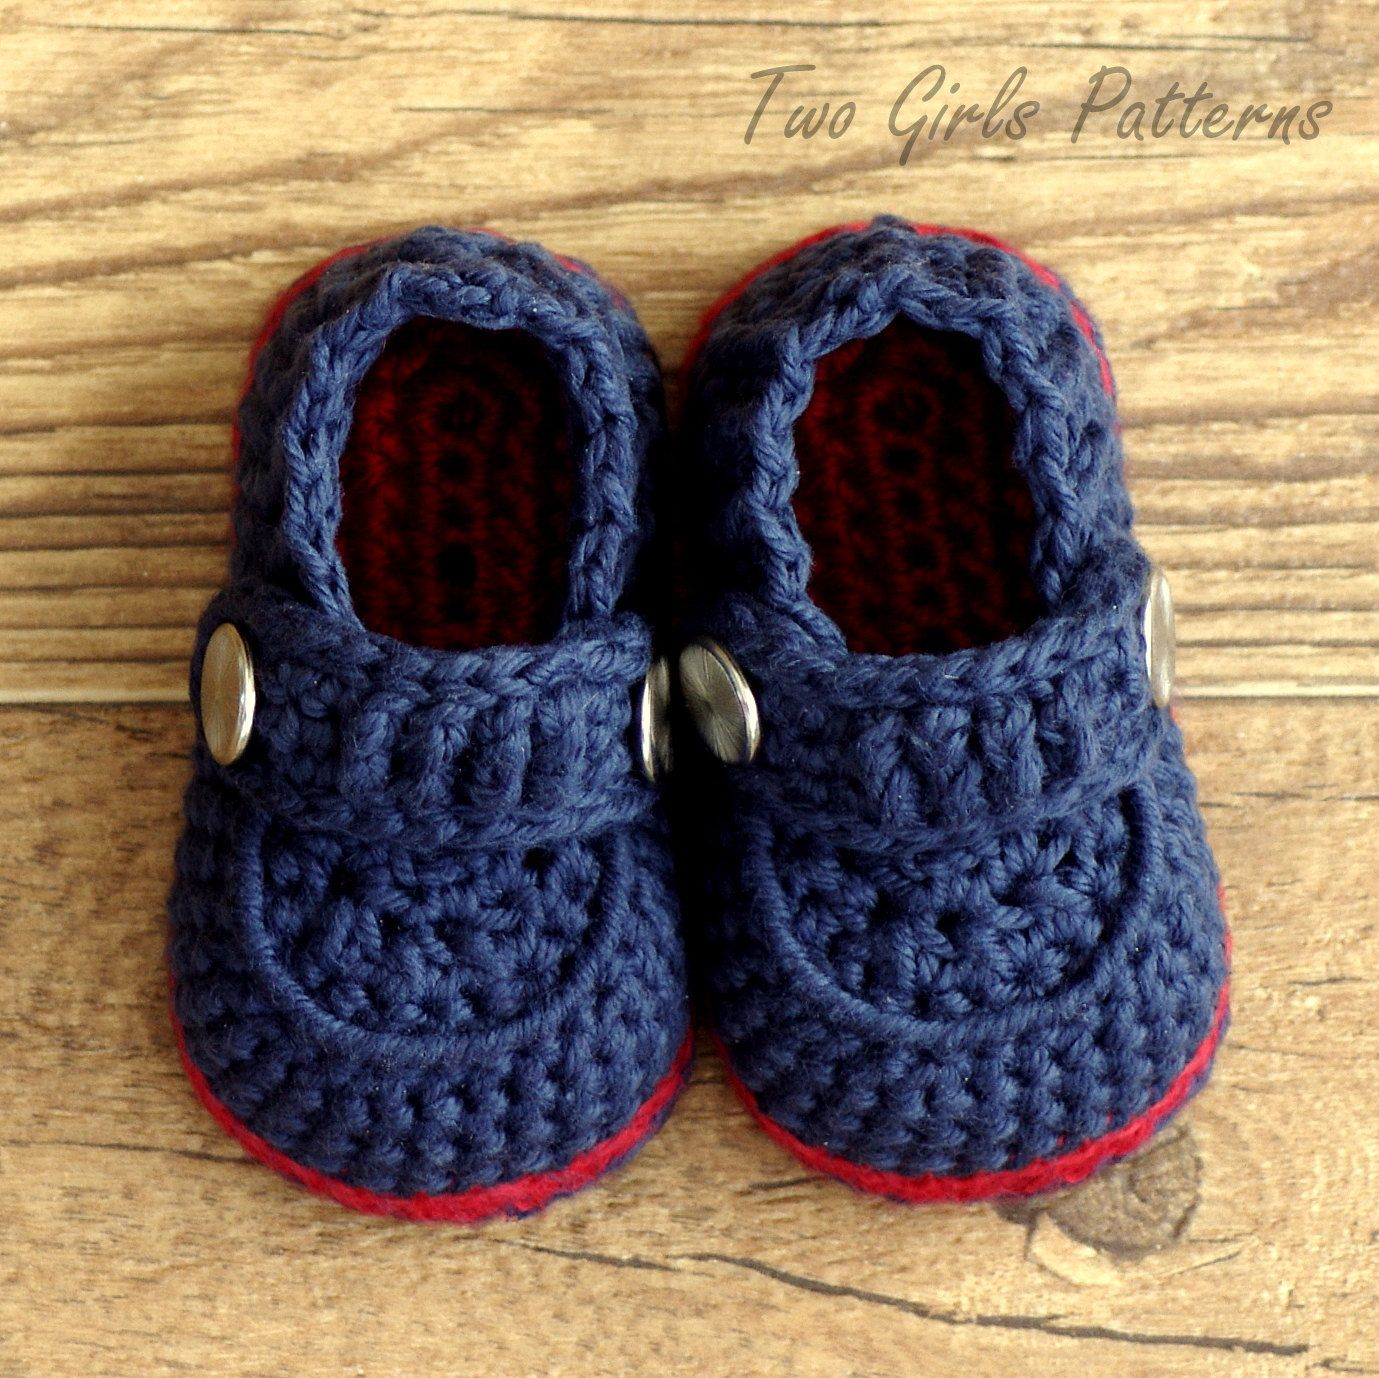 Crochet patterns - Baby Boy Booties - The Sailor - Pattern number ...